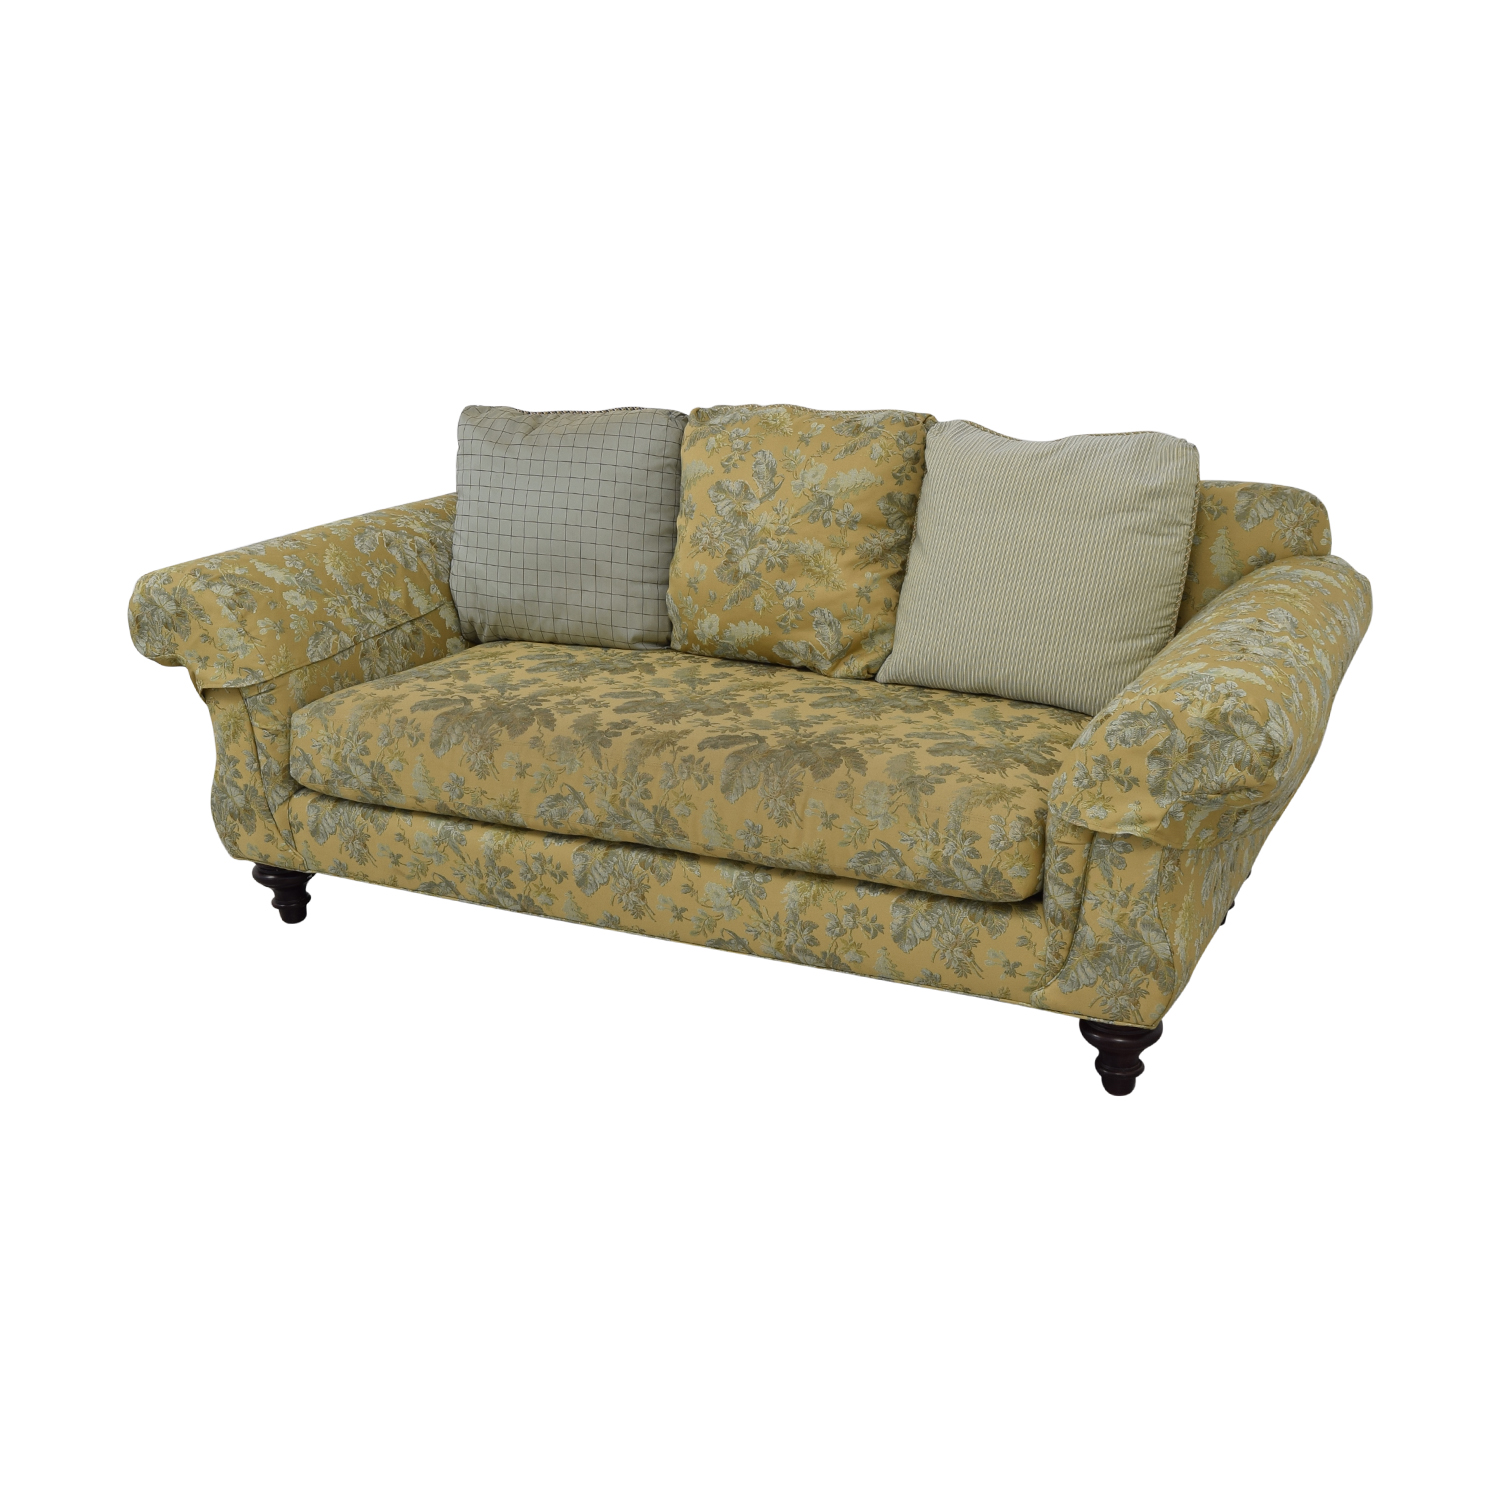 shop Vanguard Furniture with Down-Filled Pillows Vanguard Furniture Classic Sofas